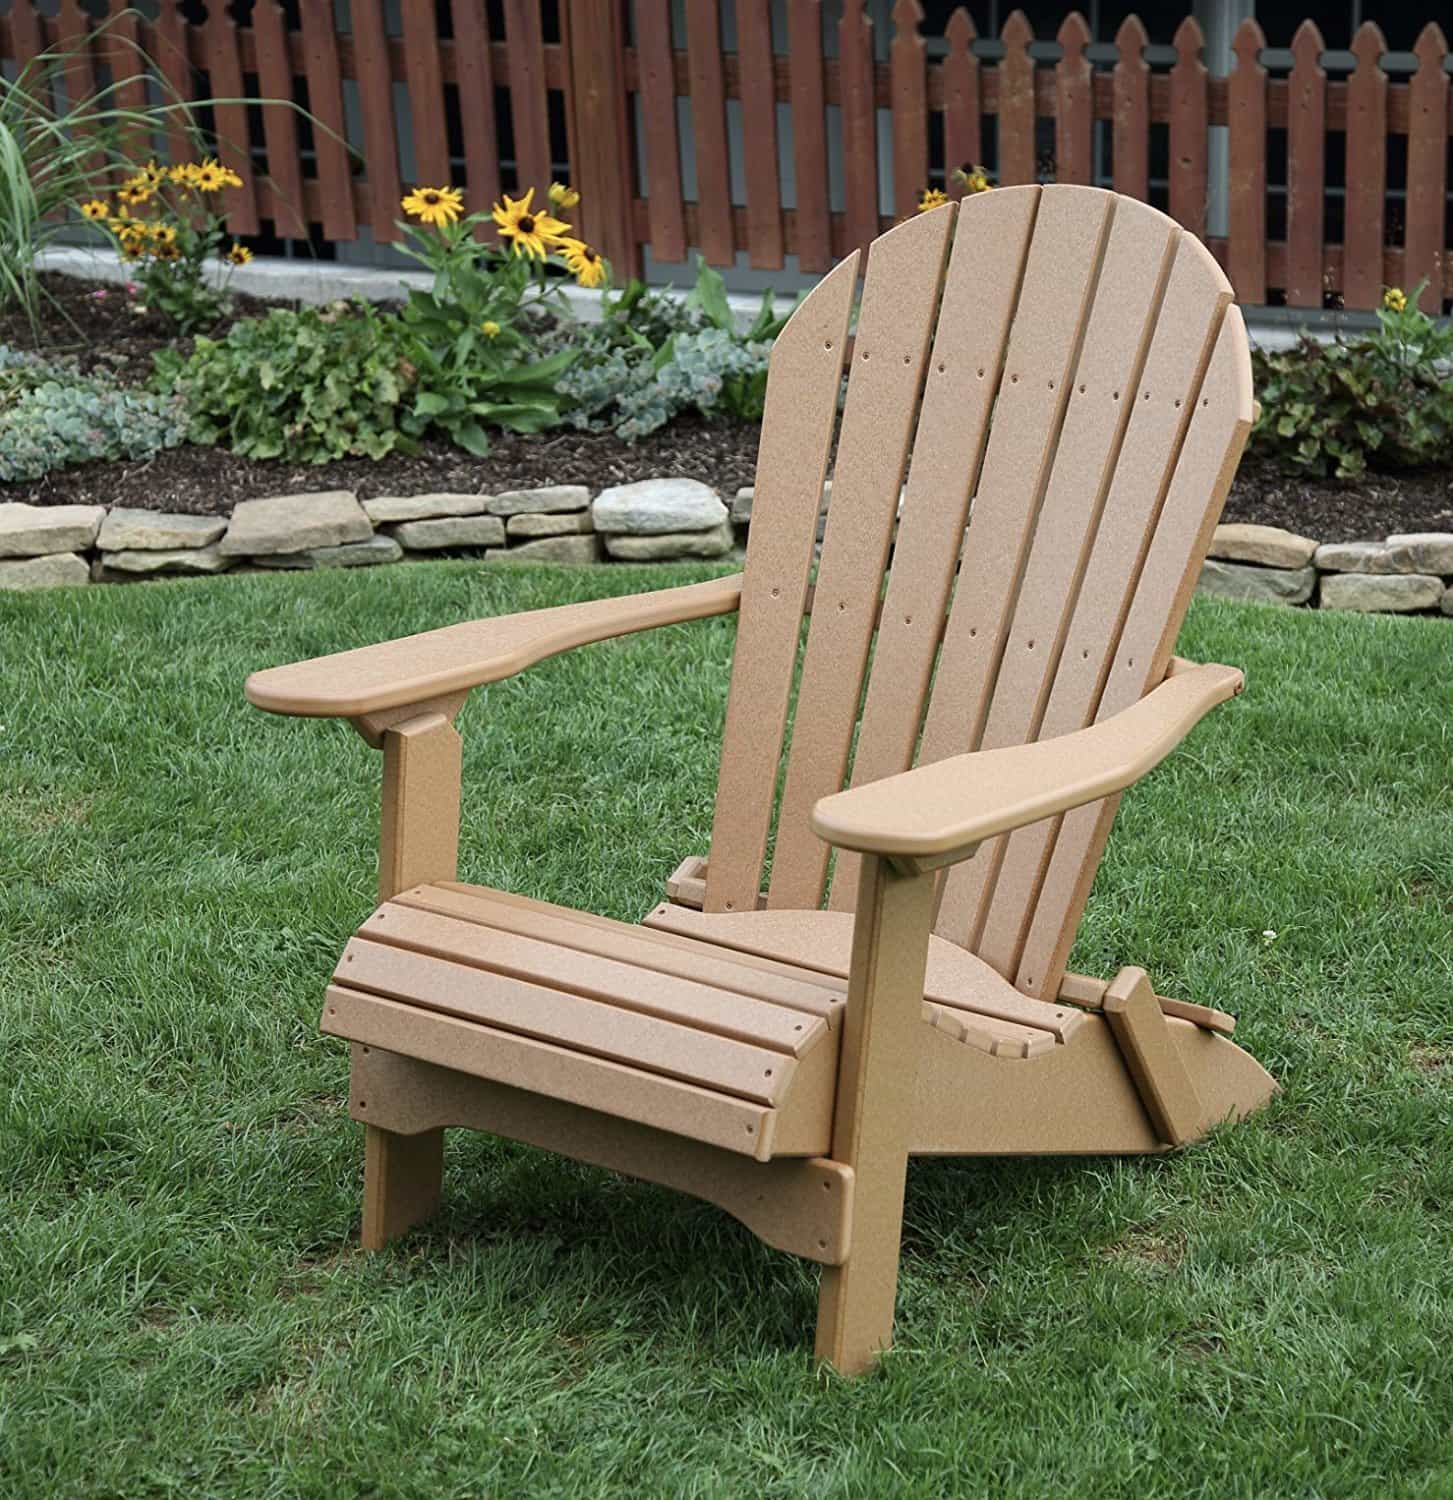 POLY LUMBER Rolled Seating AMISH CRAFTED Folding Adirondack Chair USA